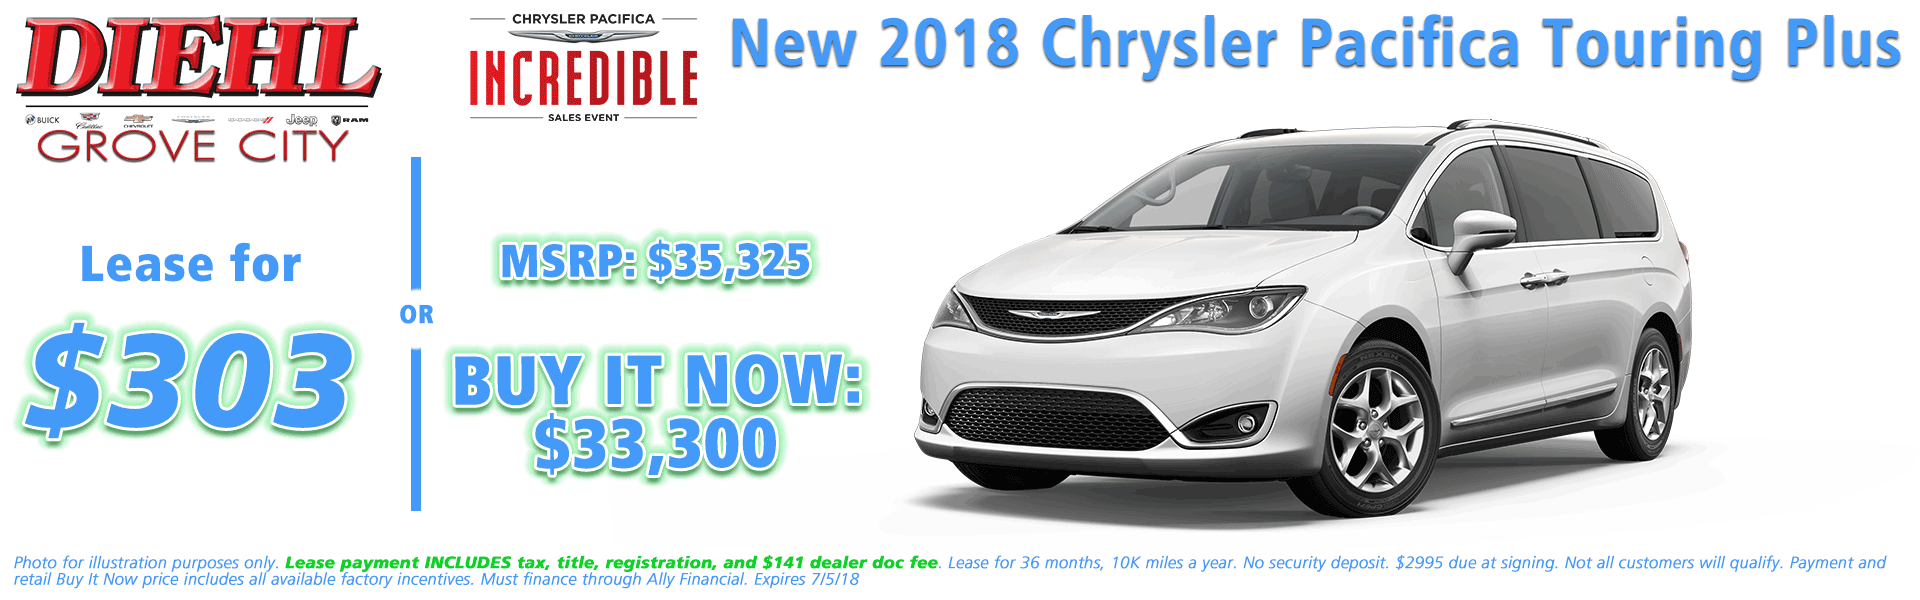 NEW 2018 CHRYSLER PACIFICA TOURING PLUS Diehl of Grove City, Pennsylvania. Chrysler Jeep Dodge Ram Chevrolet Buick Cadillac dealership